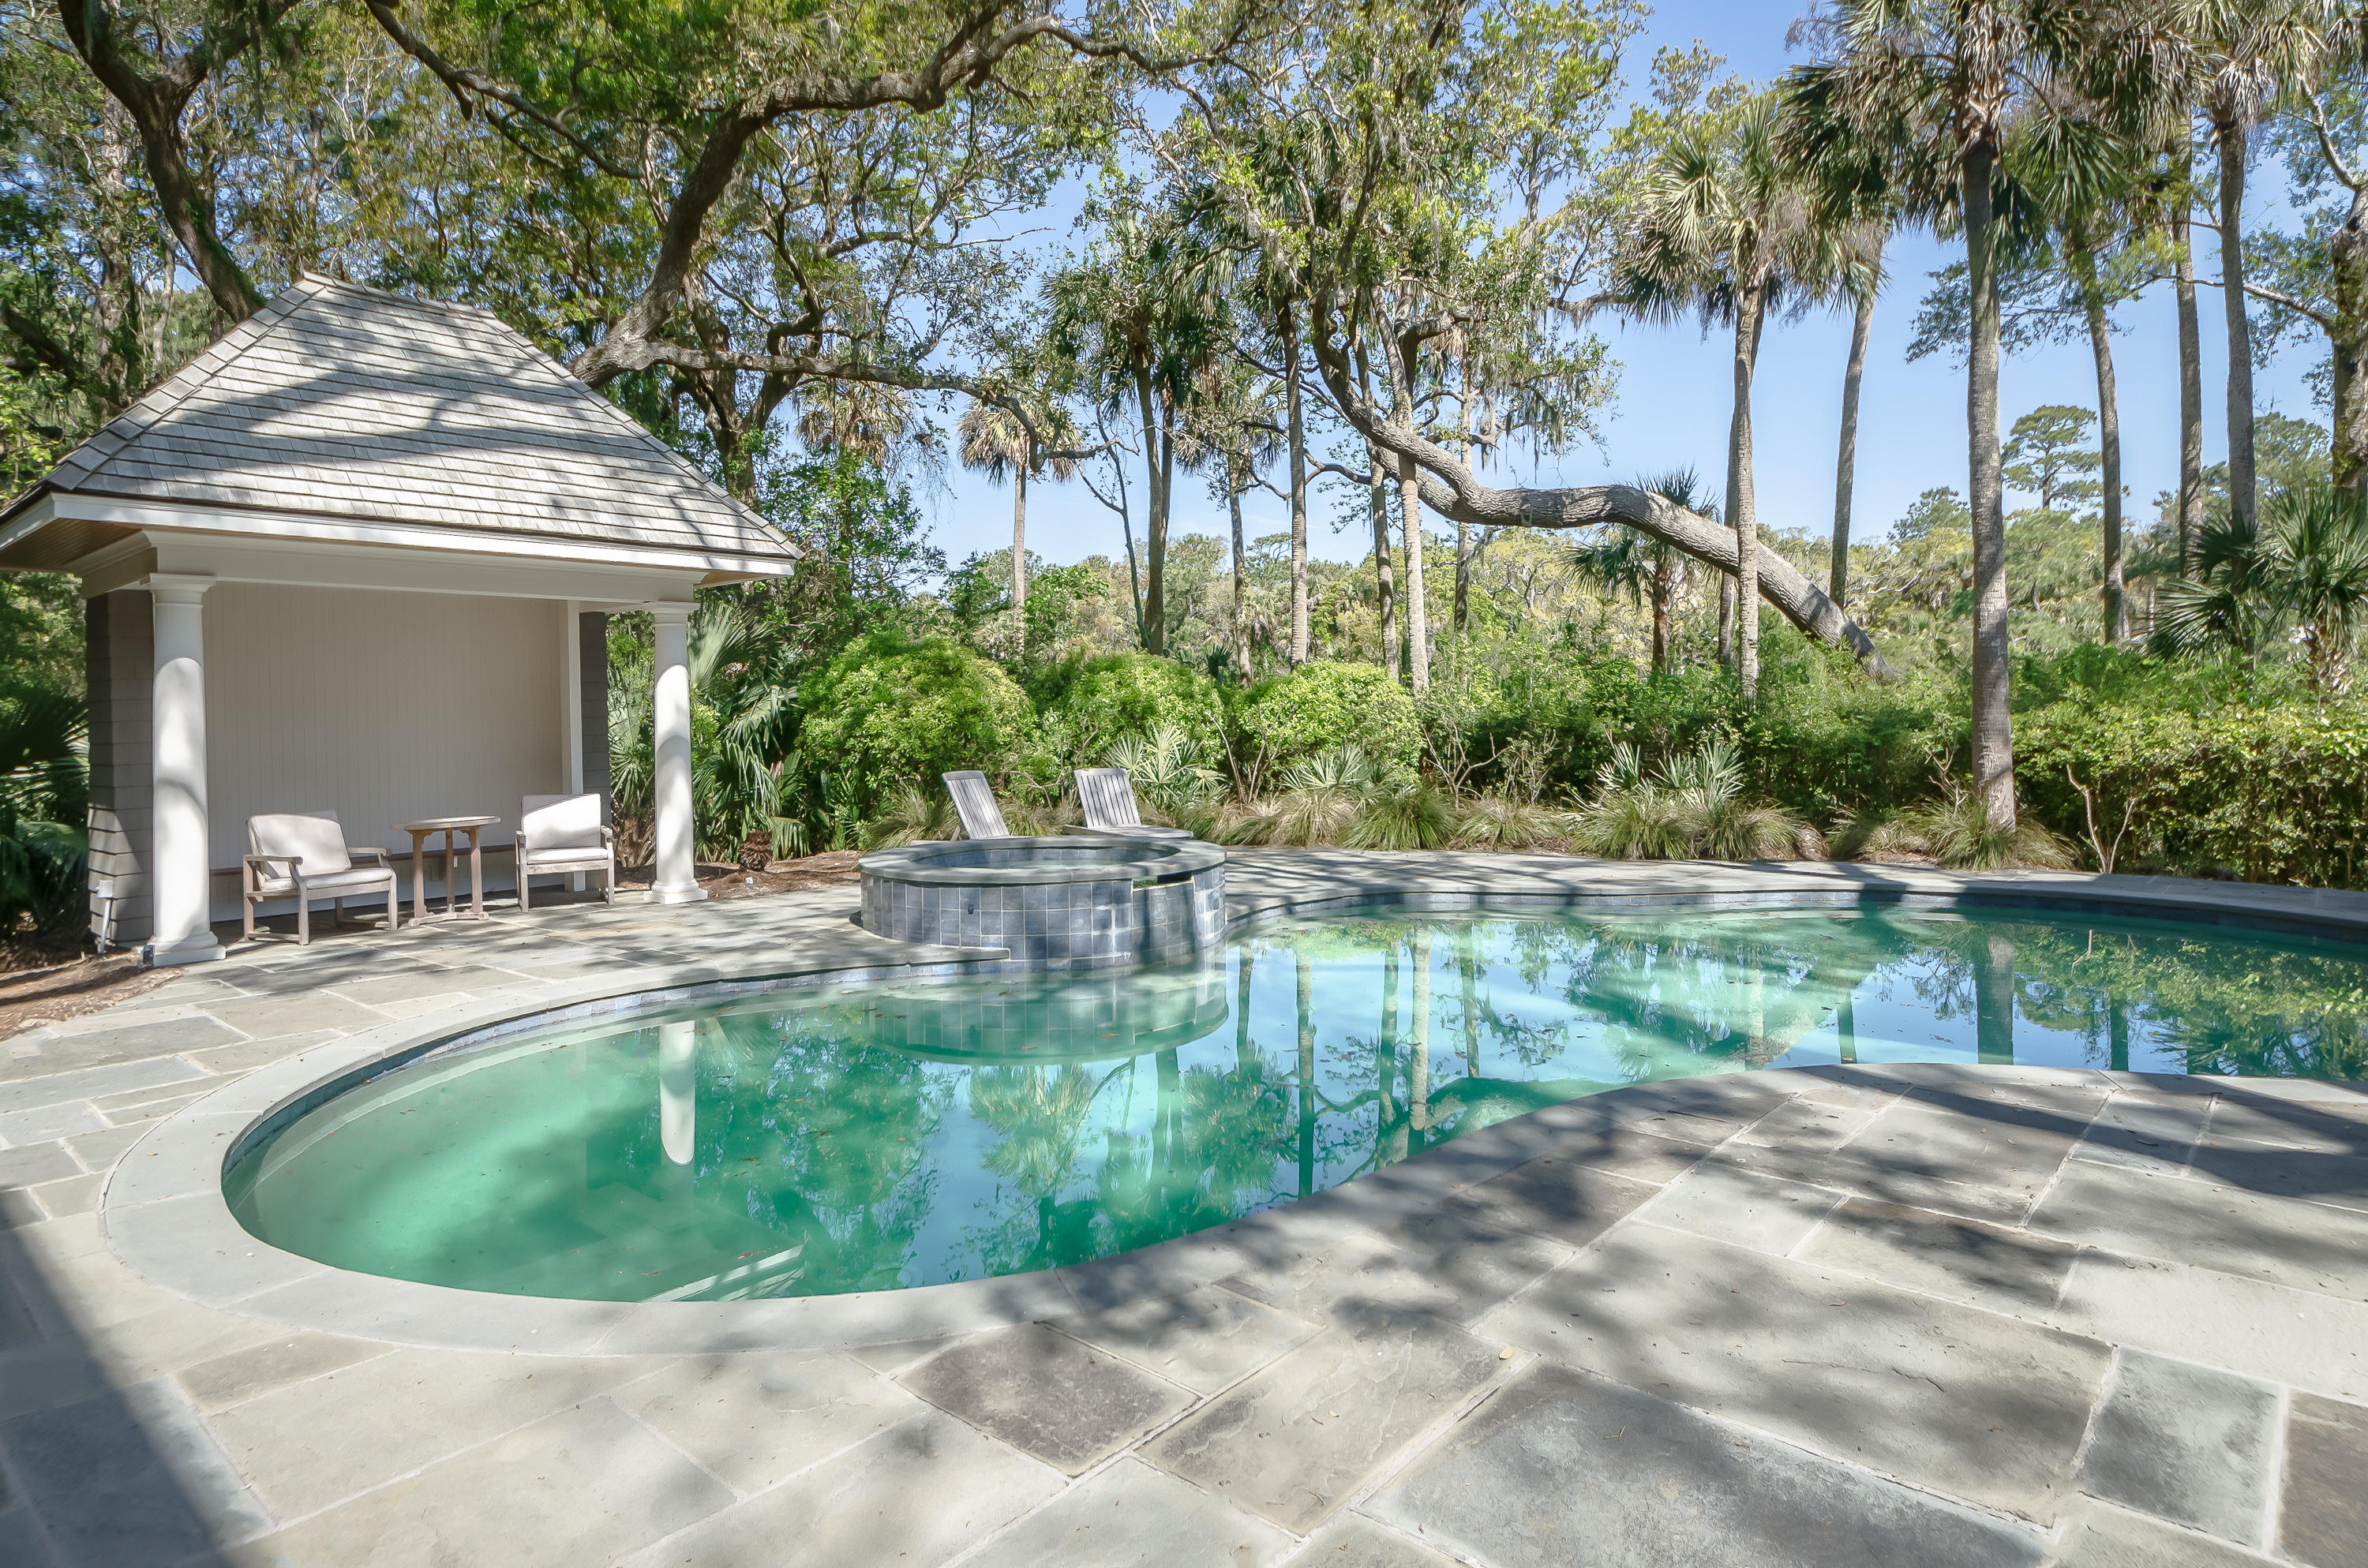 Photo of 116 Osprey Point Ln, Kiawah Island, SC 29455